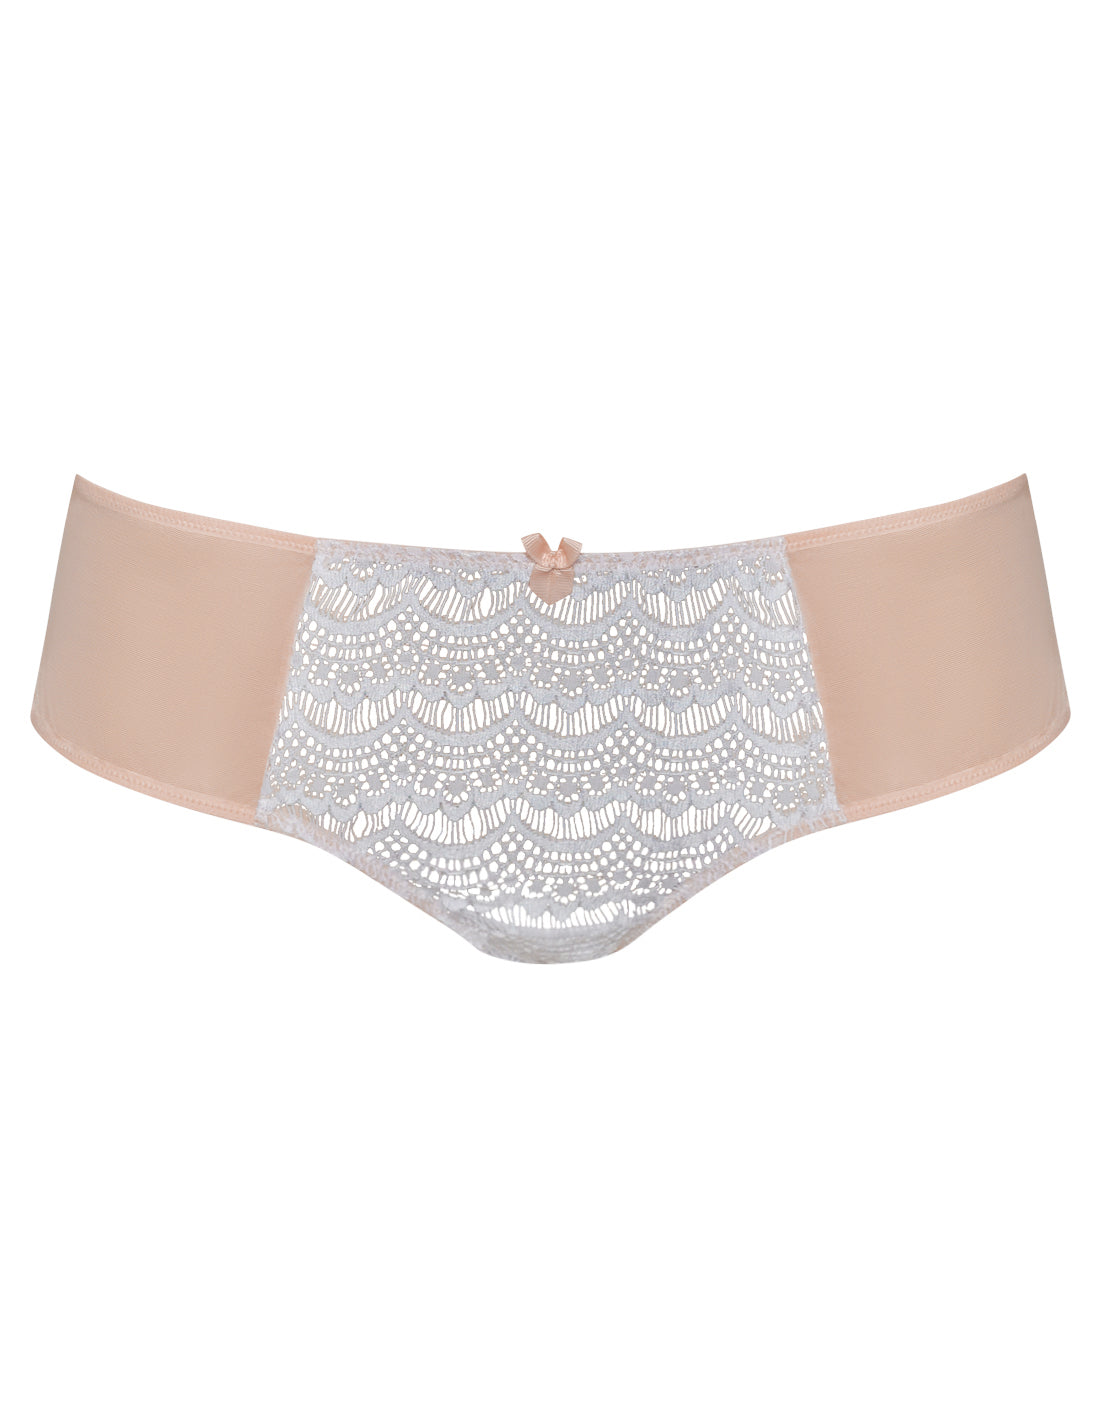 Zsa Zsa Classic Lace Brief